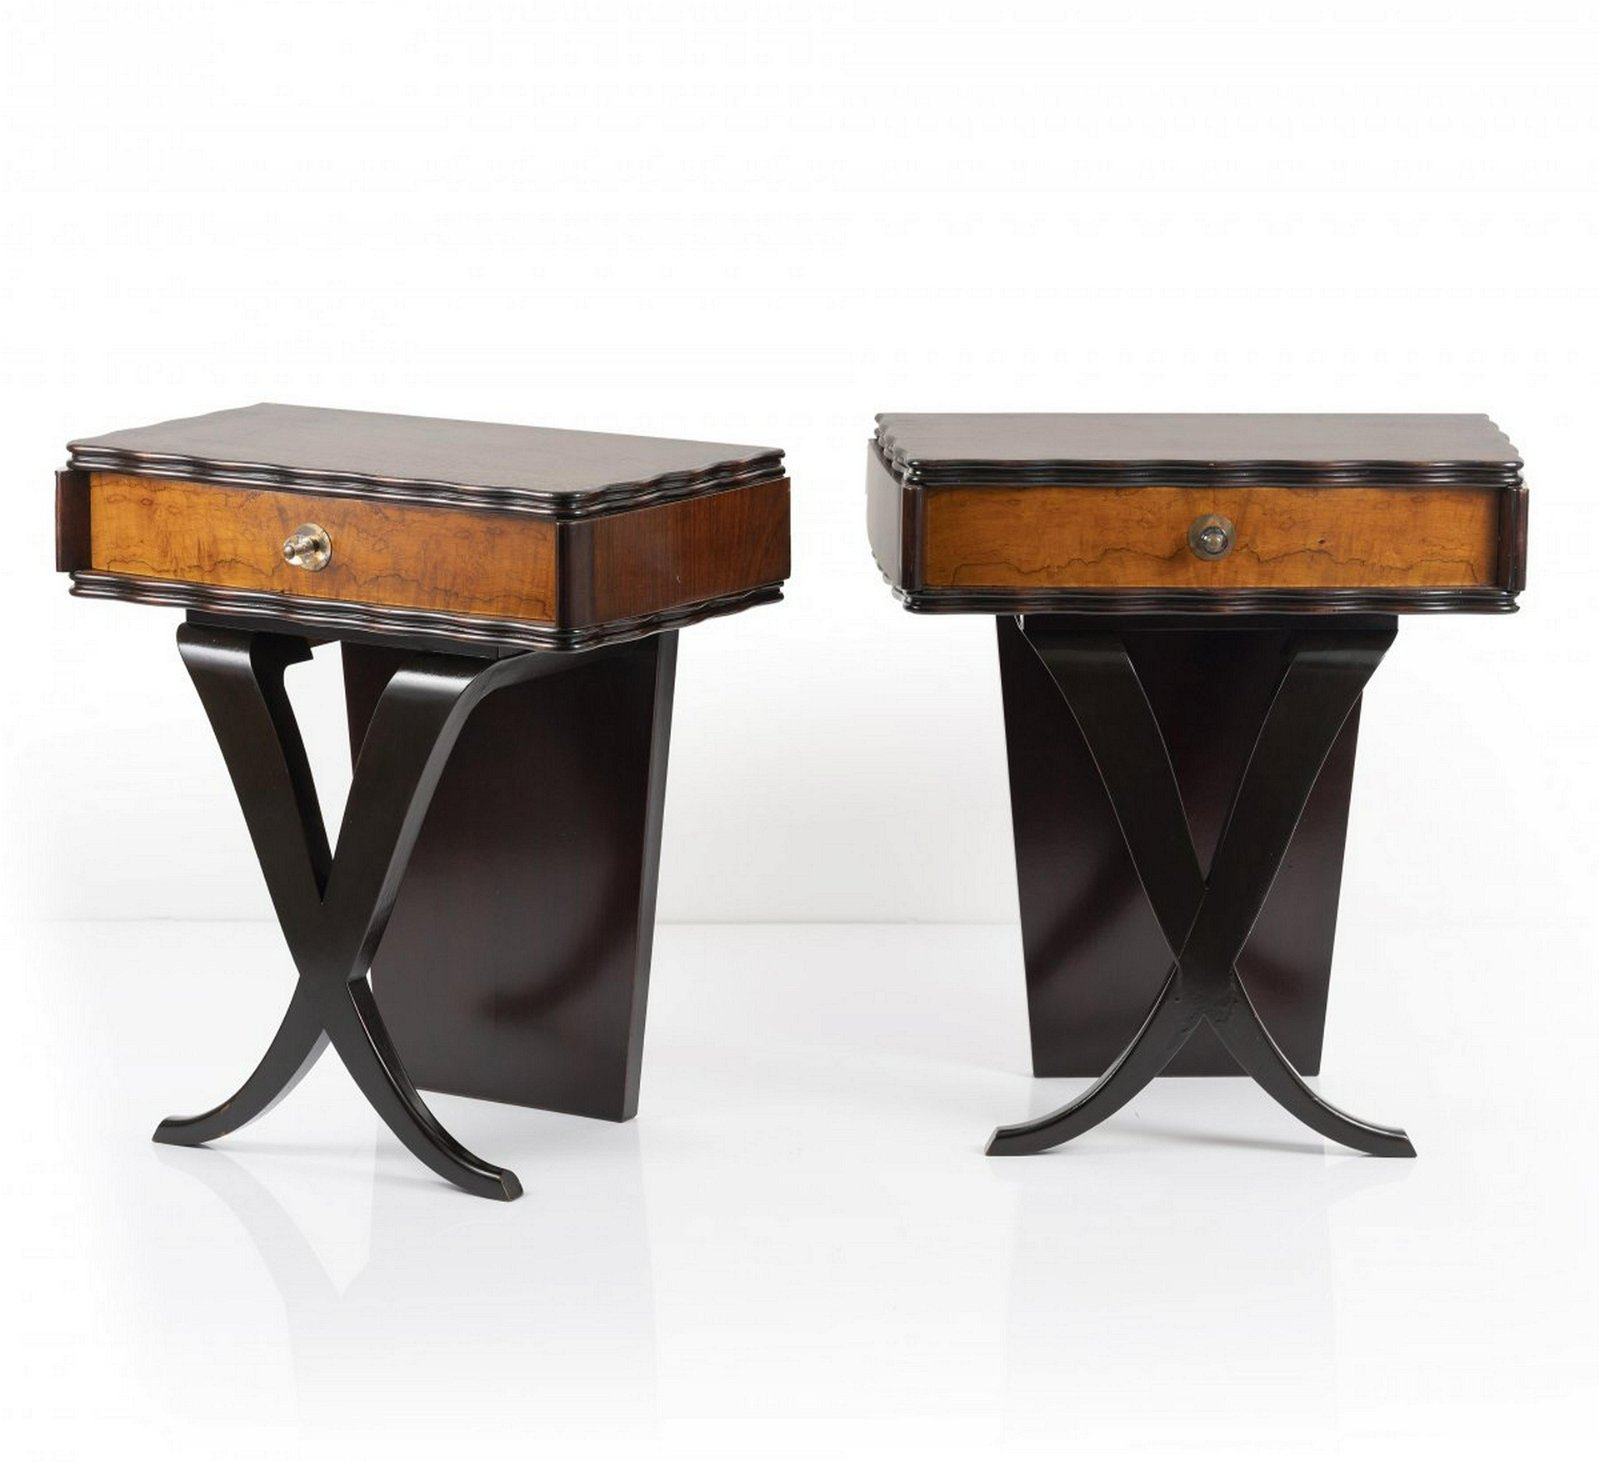 Italy, Two bedside tables, 1940/50s